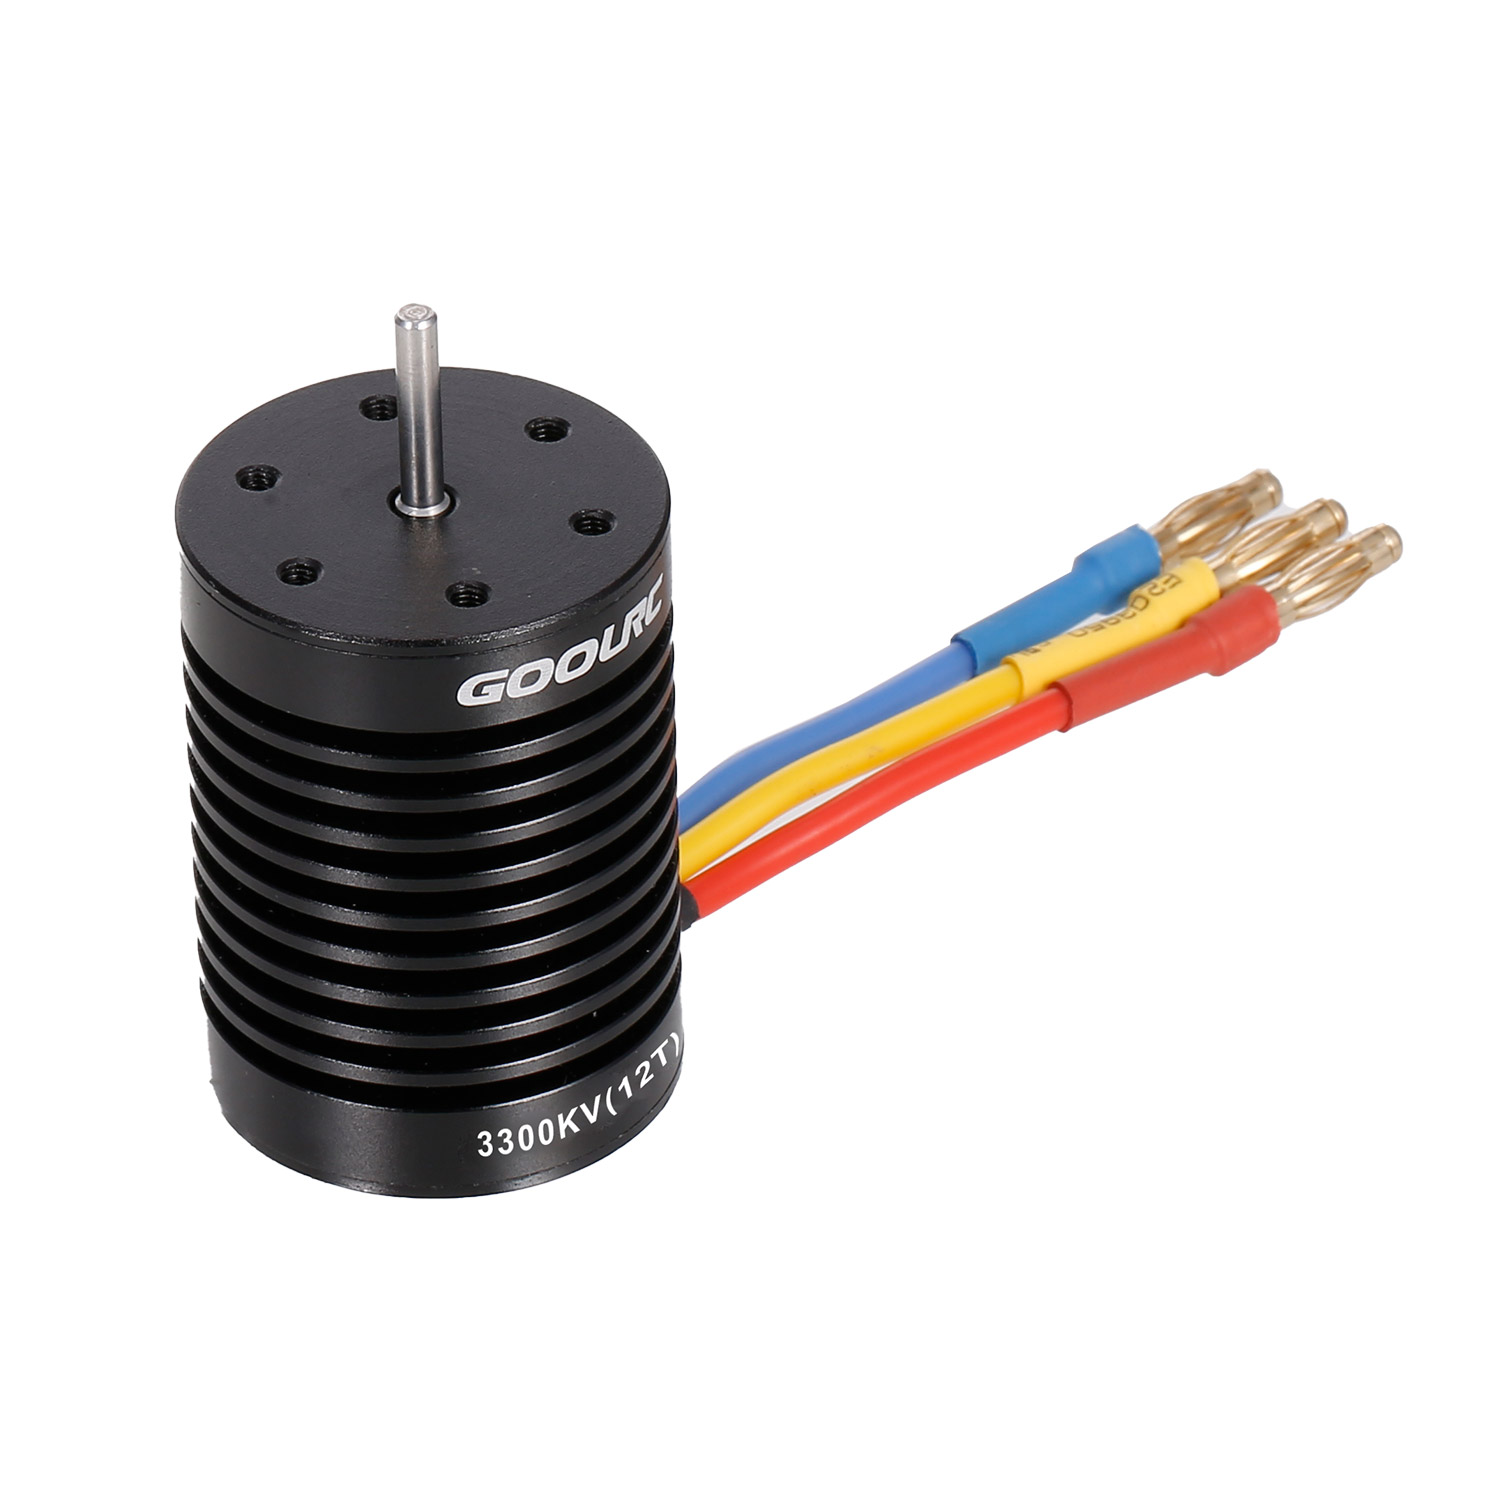 <font><b>GoolRC</b></font> 12T Motor <font><b>3650</b></font> 3300KV Brushless Motor 60A ESC Electronic Speed Controller 5.8V/3A BEC 21T 28T Gear for 1/10 RC Car Parts image